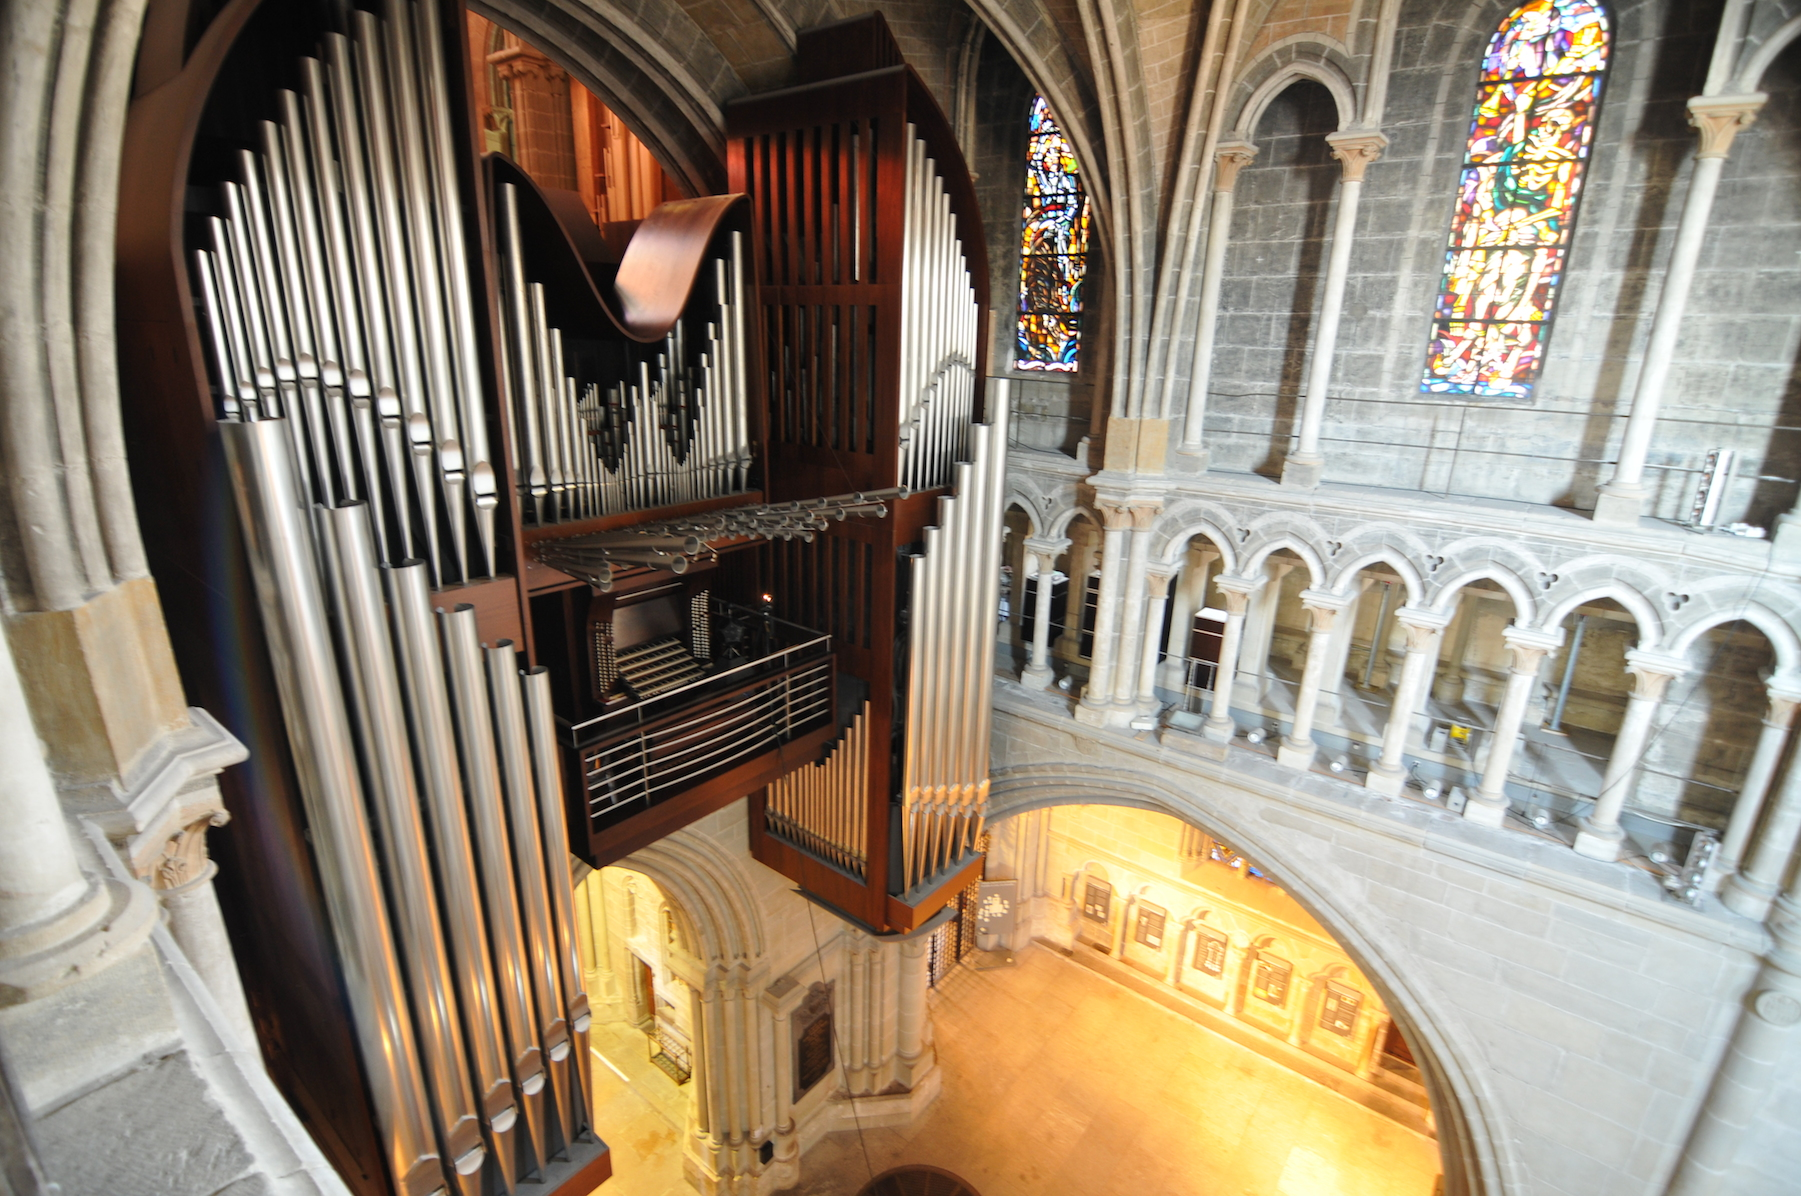 Cathedral's organ pipe